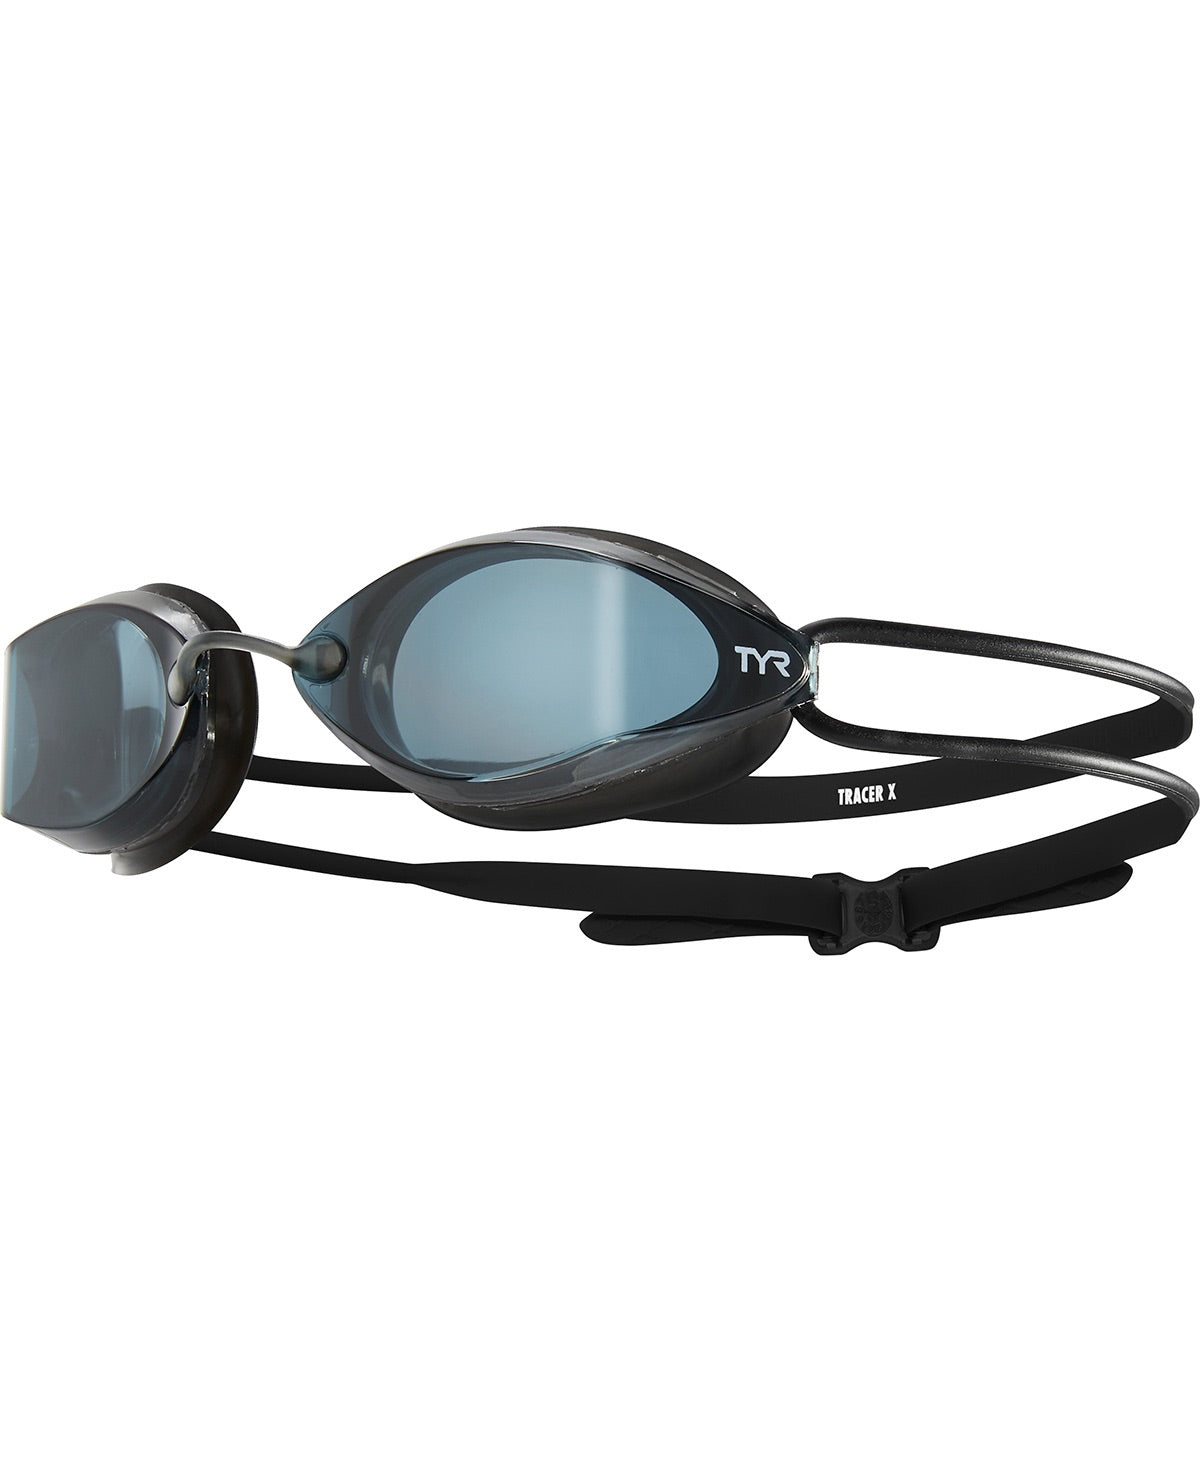 TYR TRACER-X RACING ADULT GOGGLES INSMOKE/BLACK